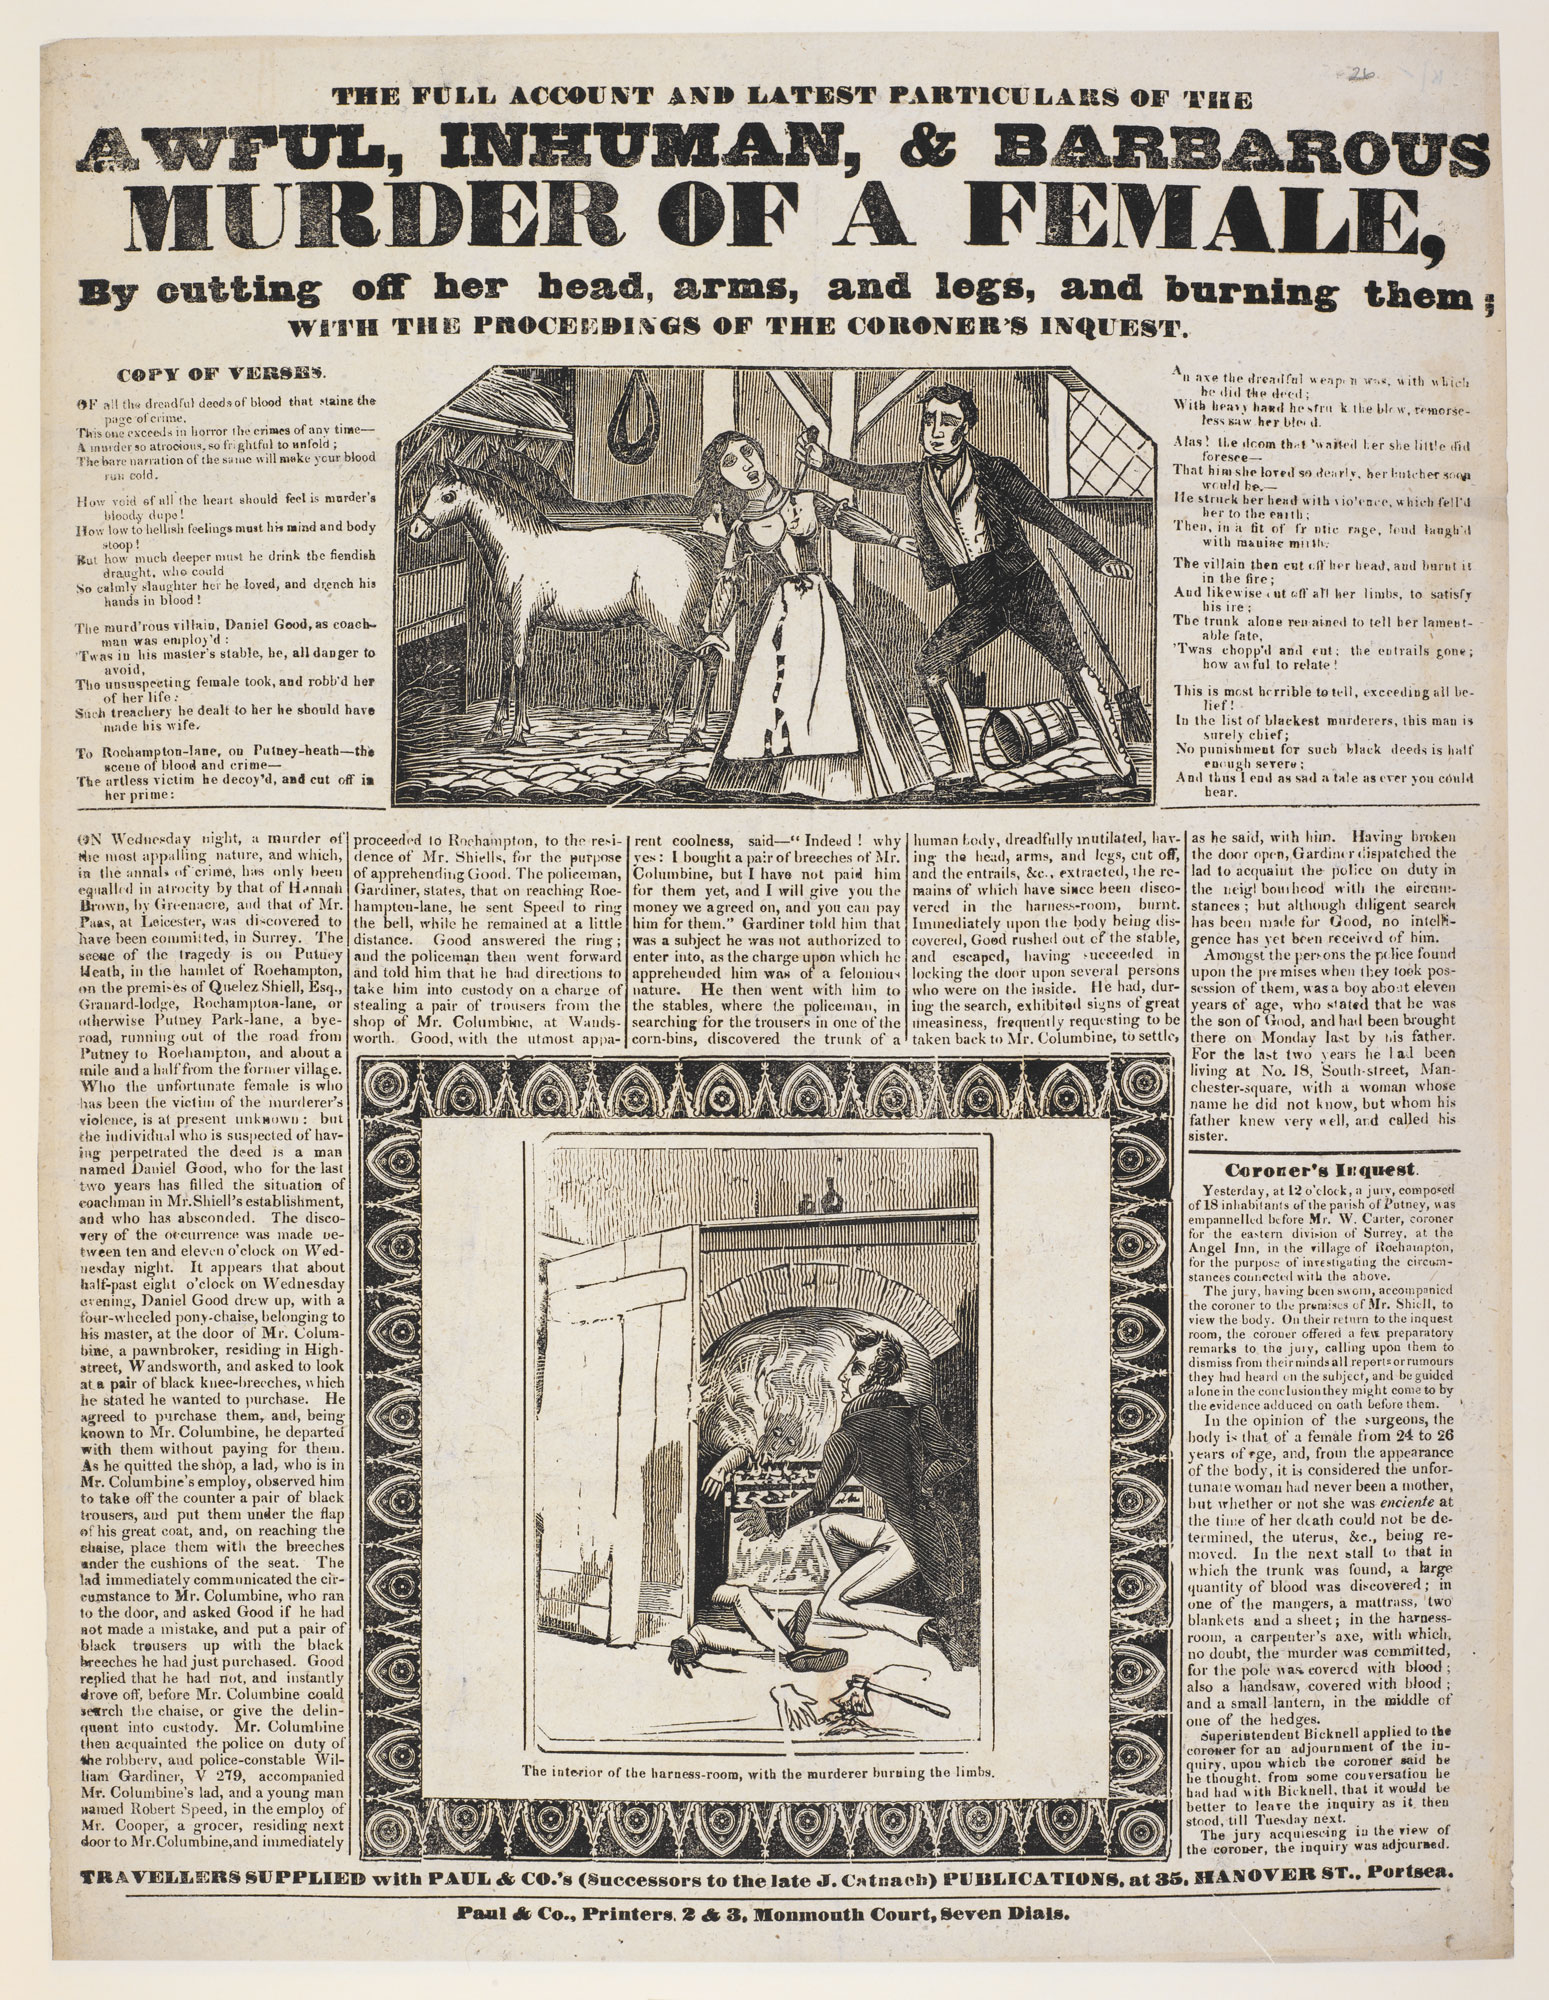 Broadside: The full account and latest particulars of the awful, inhuman, & barbarous murder of a female [page: single sheet]